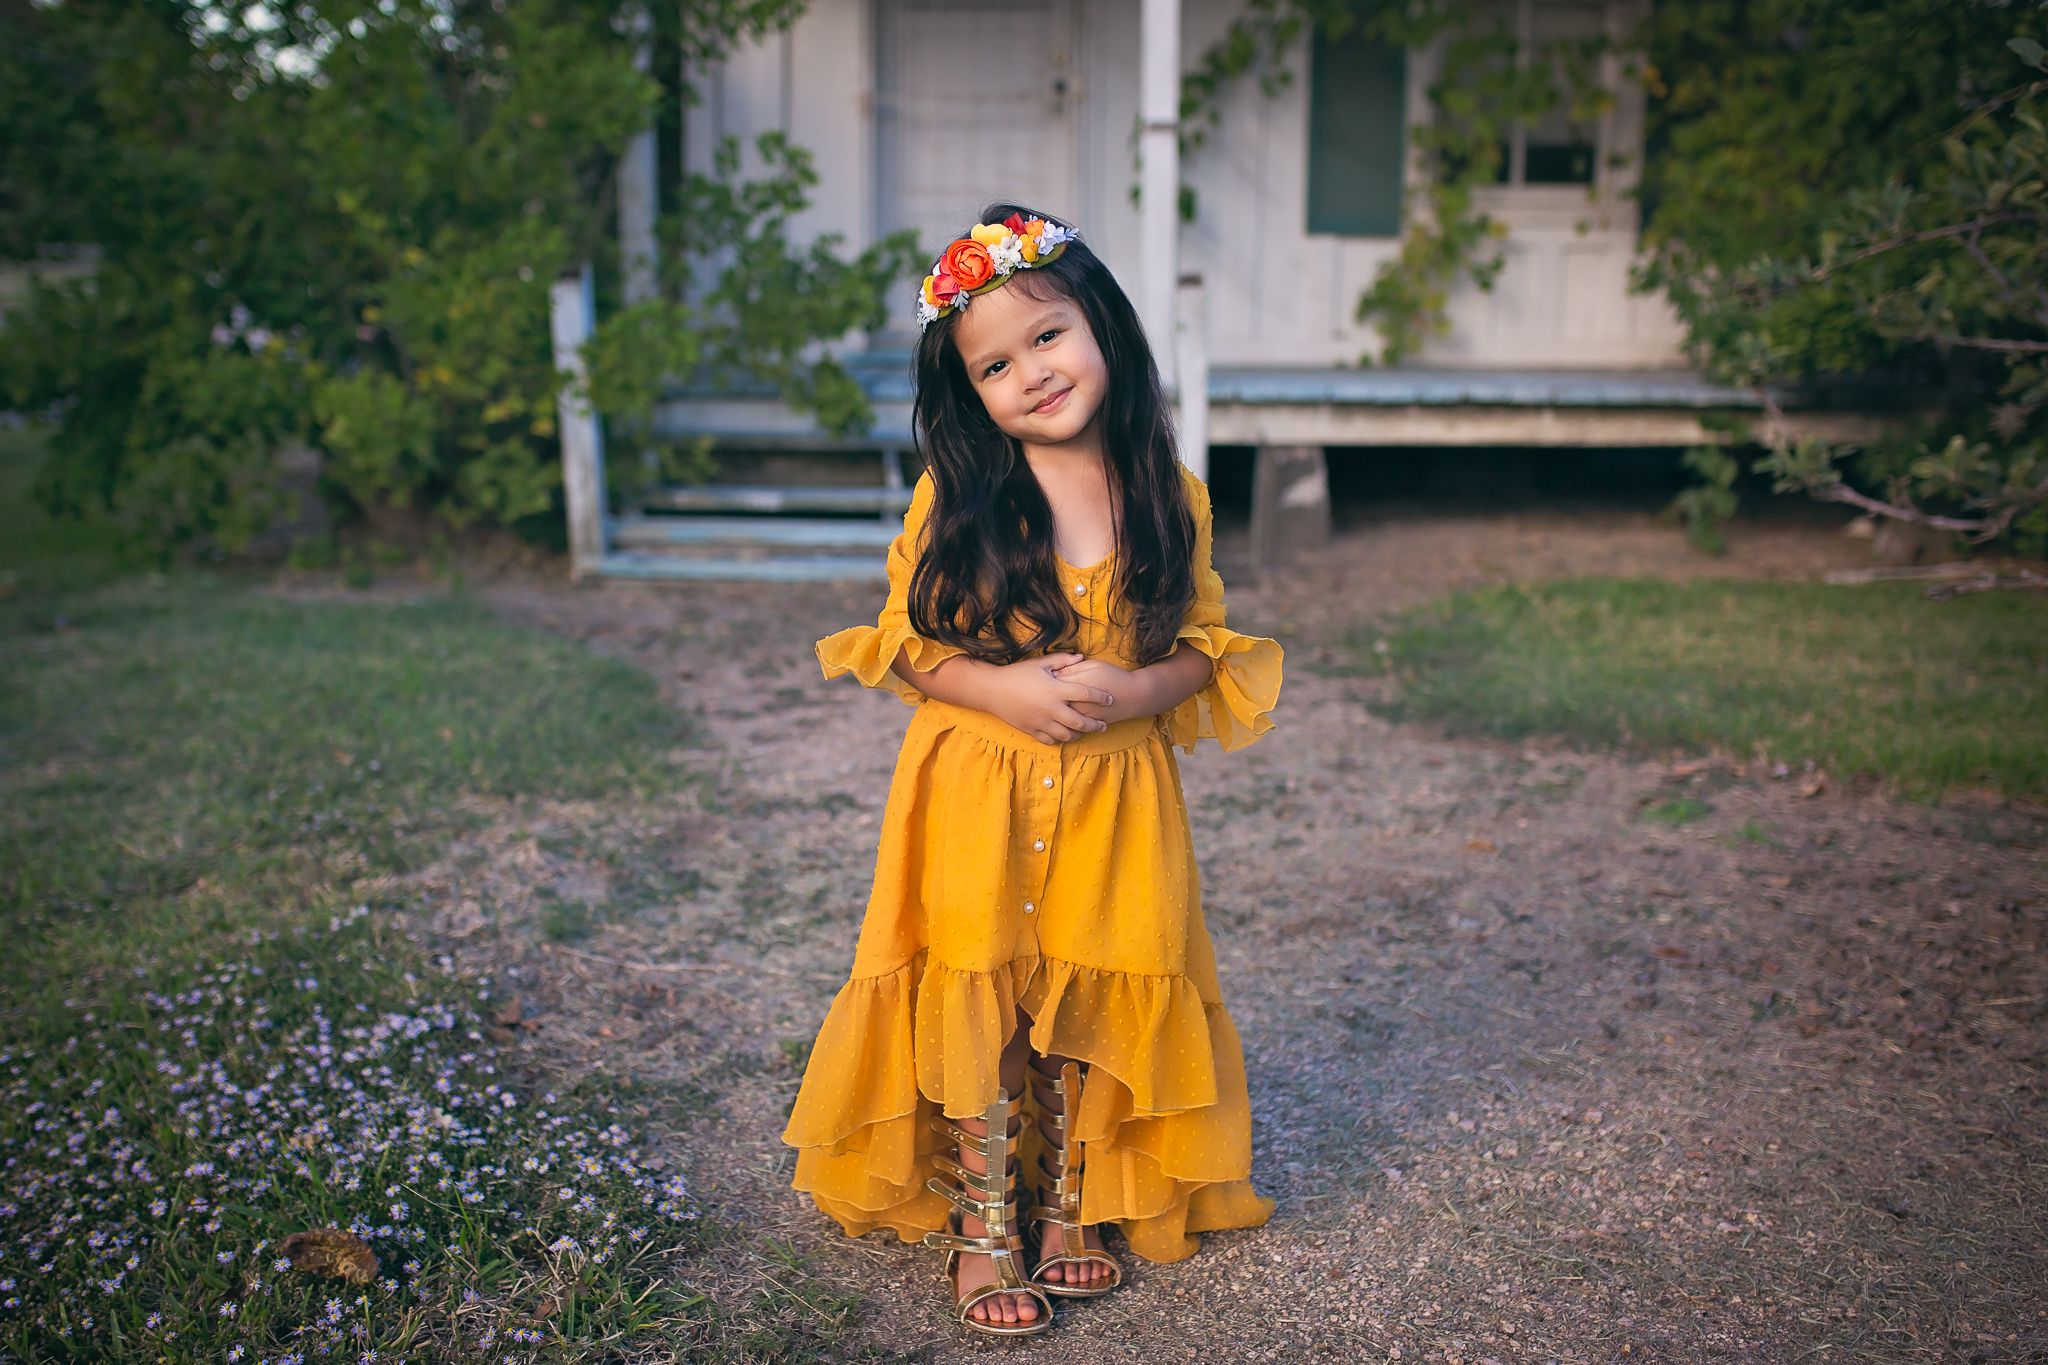 b8af2ae5a3a4 Mustard yellow high low flower girl dress by Belle & Kai. | Mustard ...